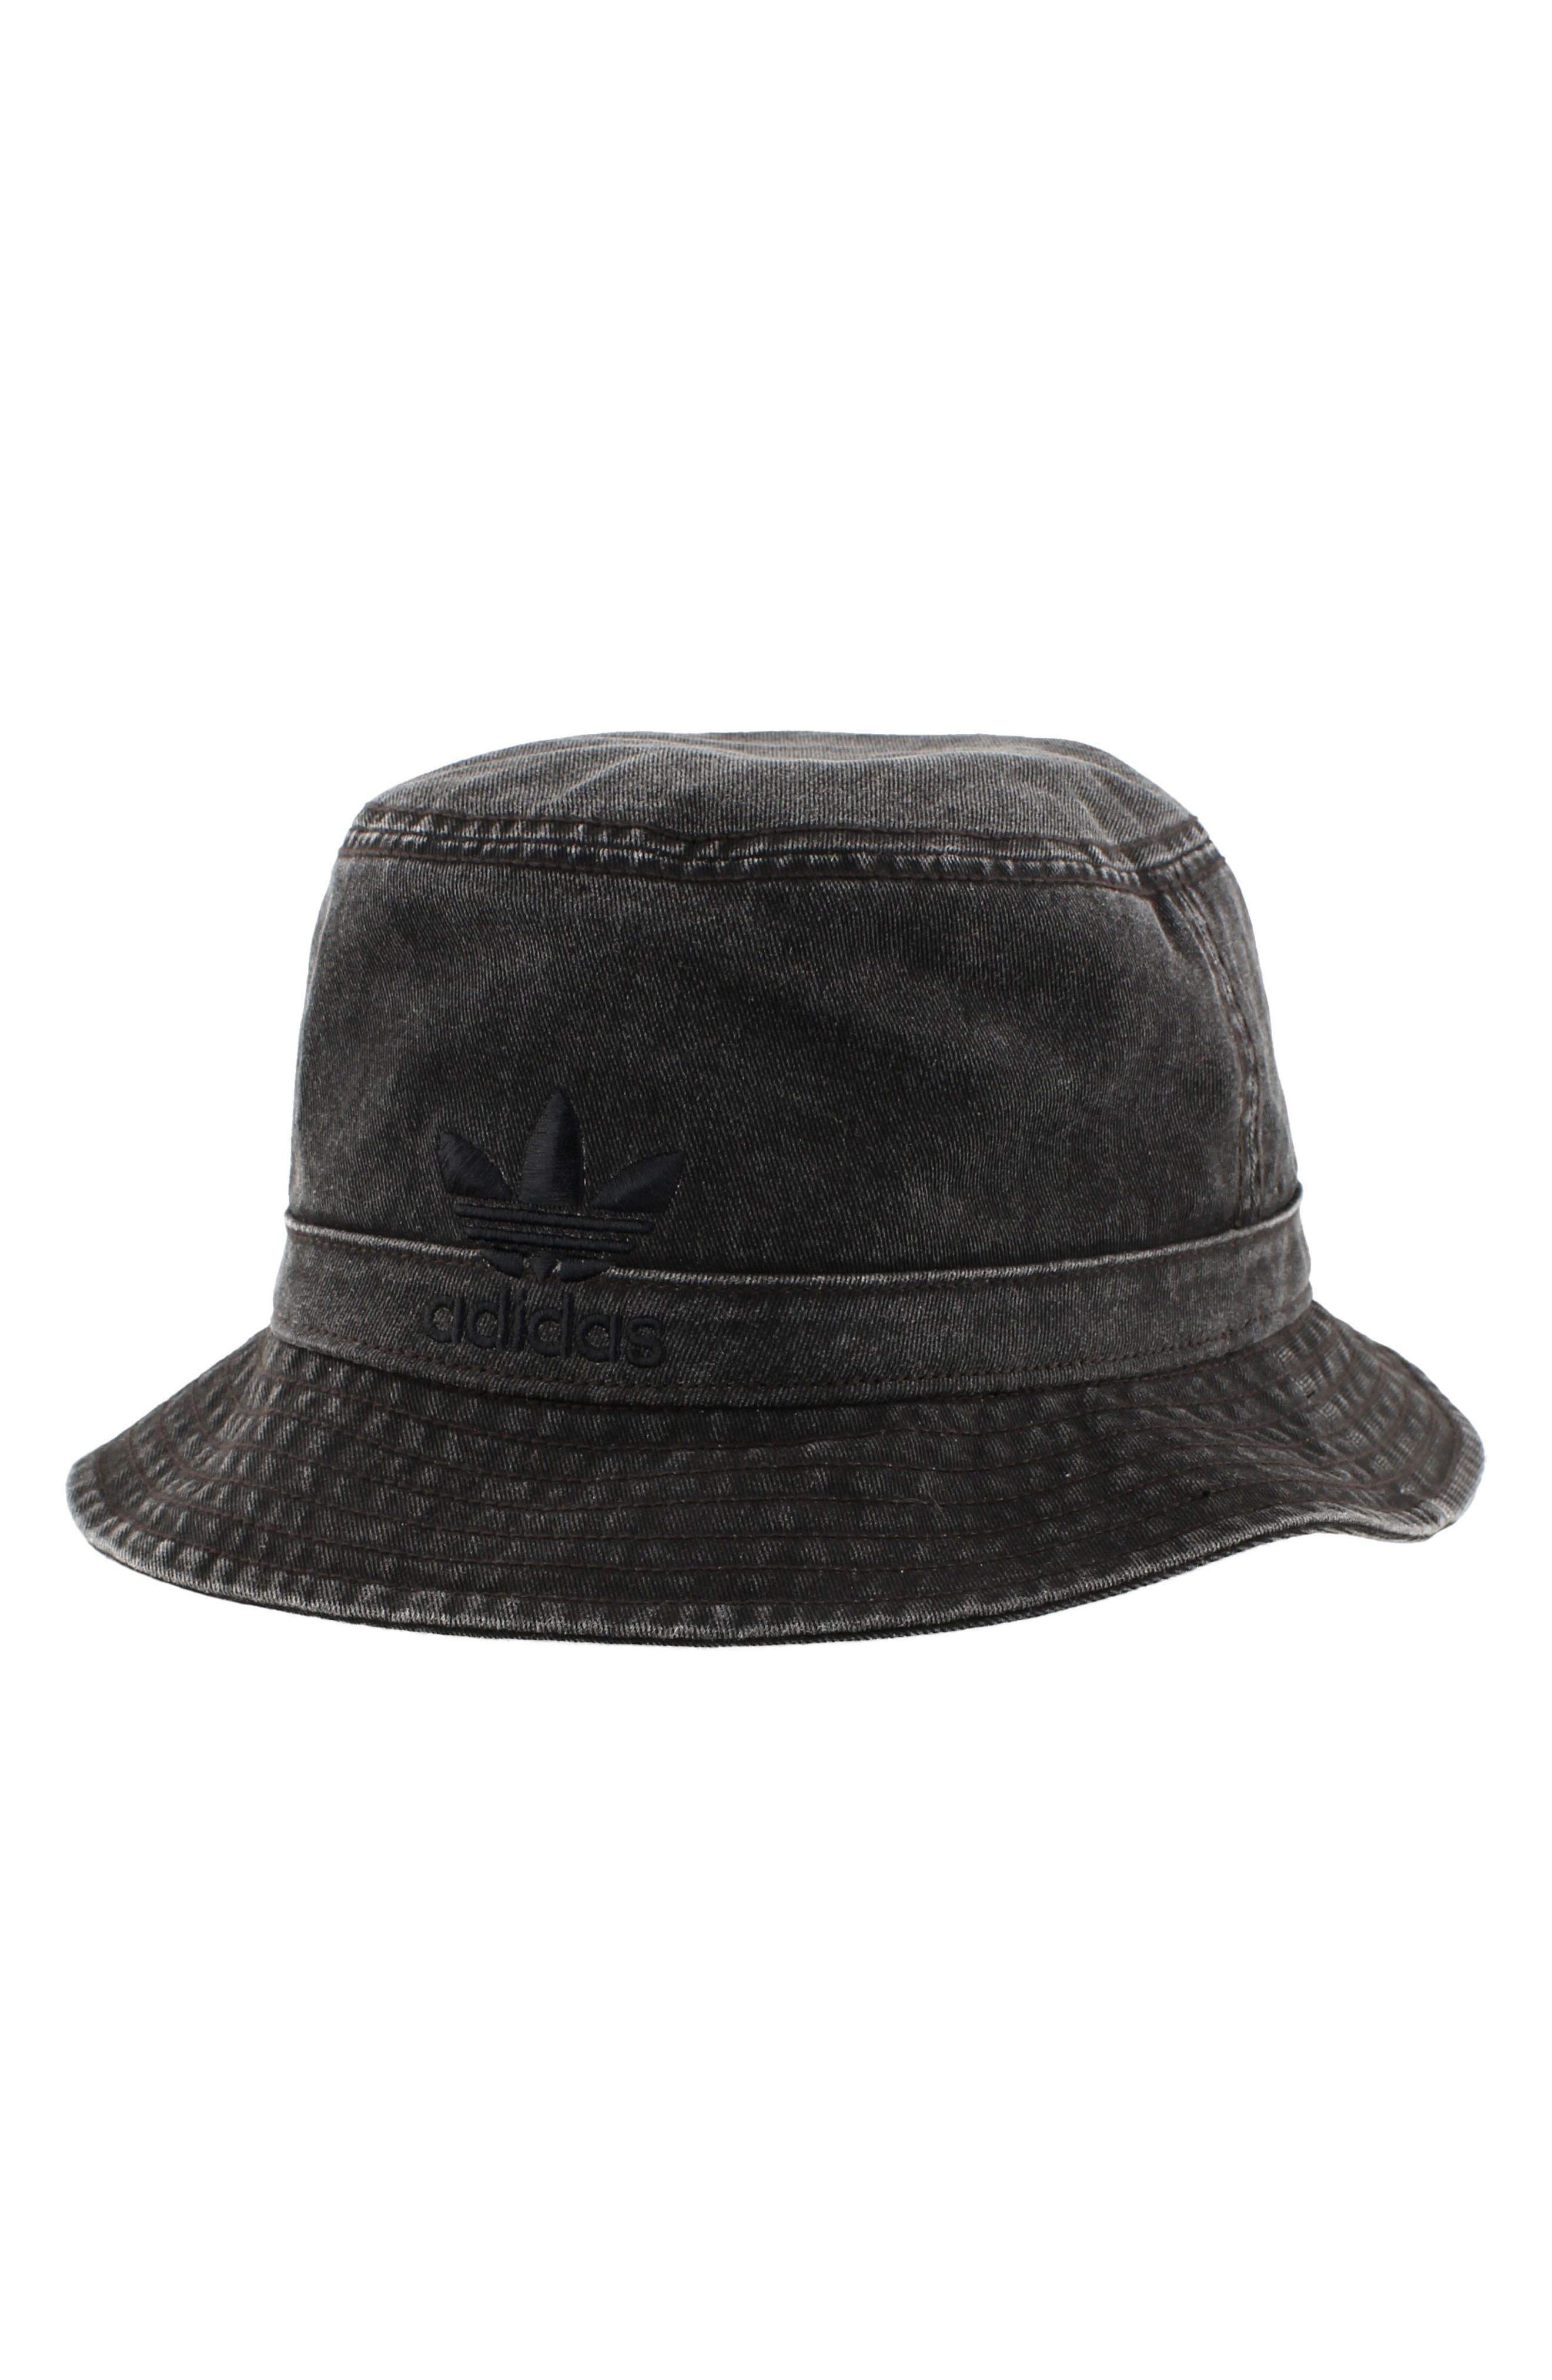 Washed Bucket Hat,                             Main thumbnail 1, color,                             001